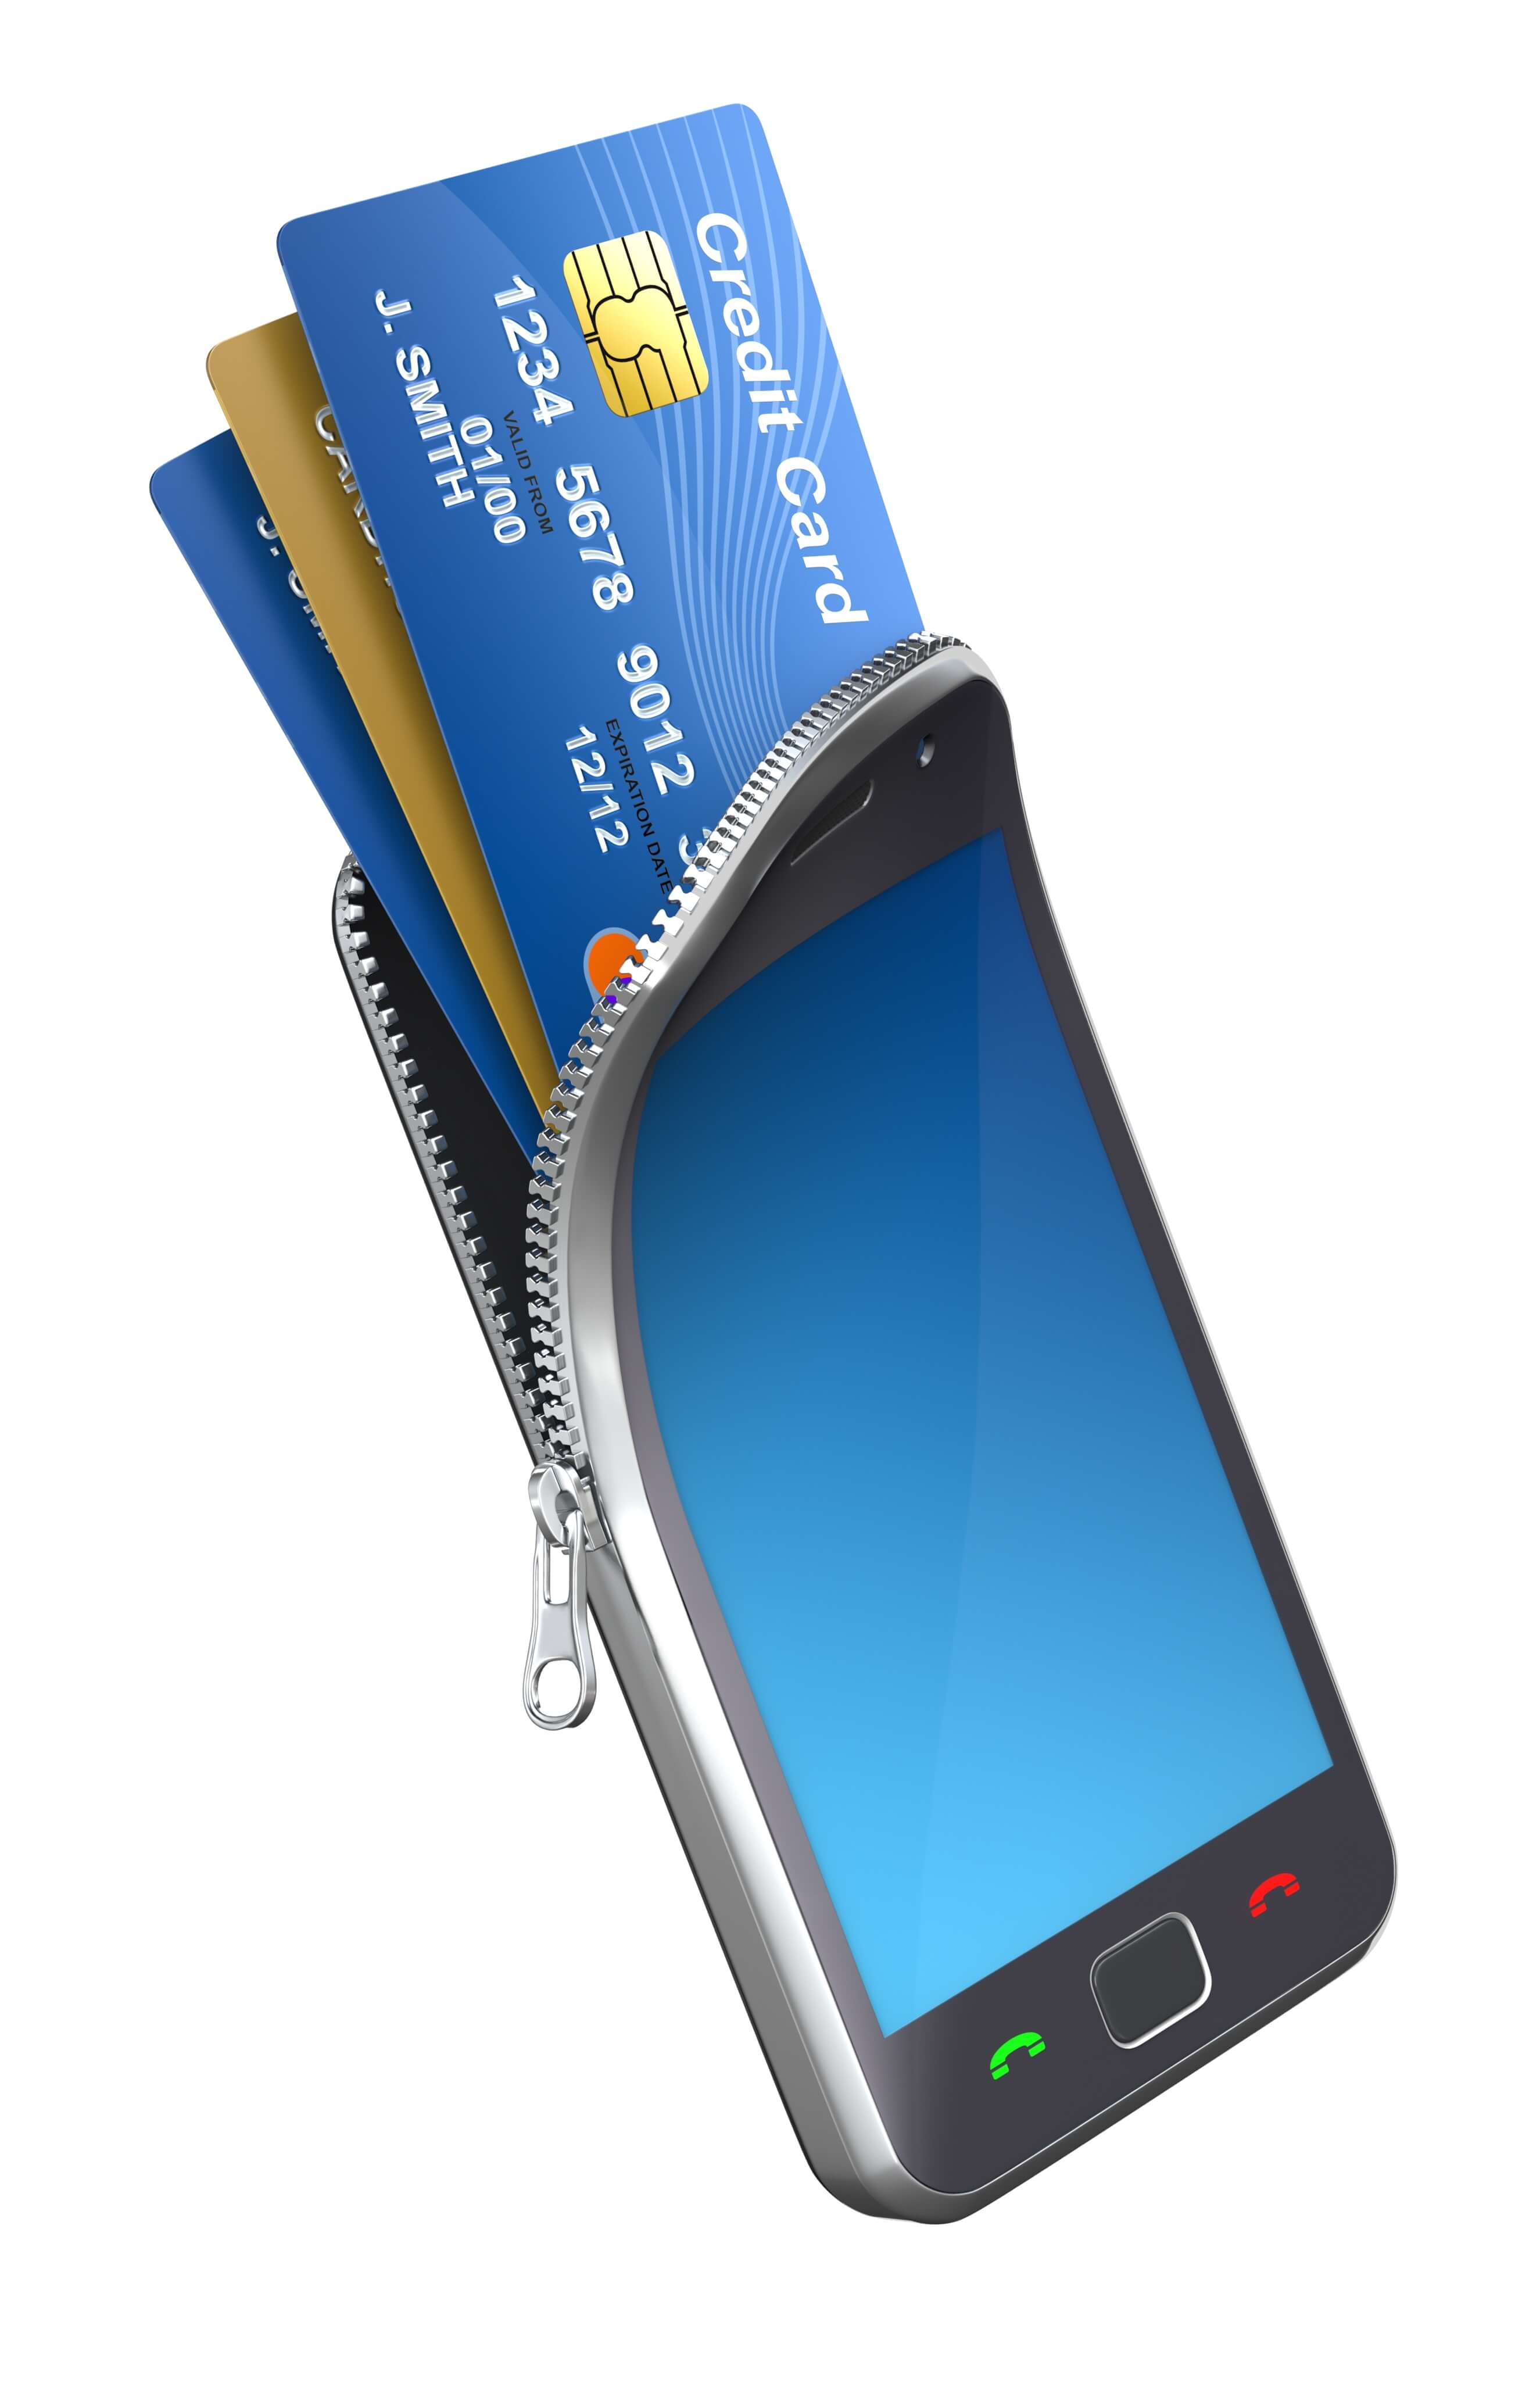 Digital Payments Juice Credit Card Usage While Helping to Avoid Risk